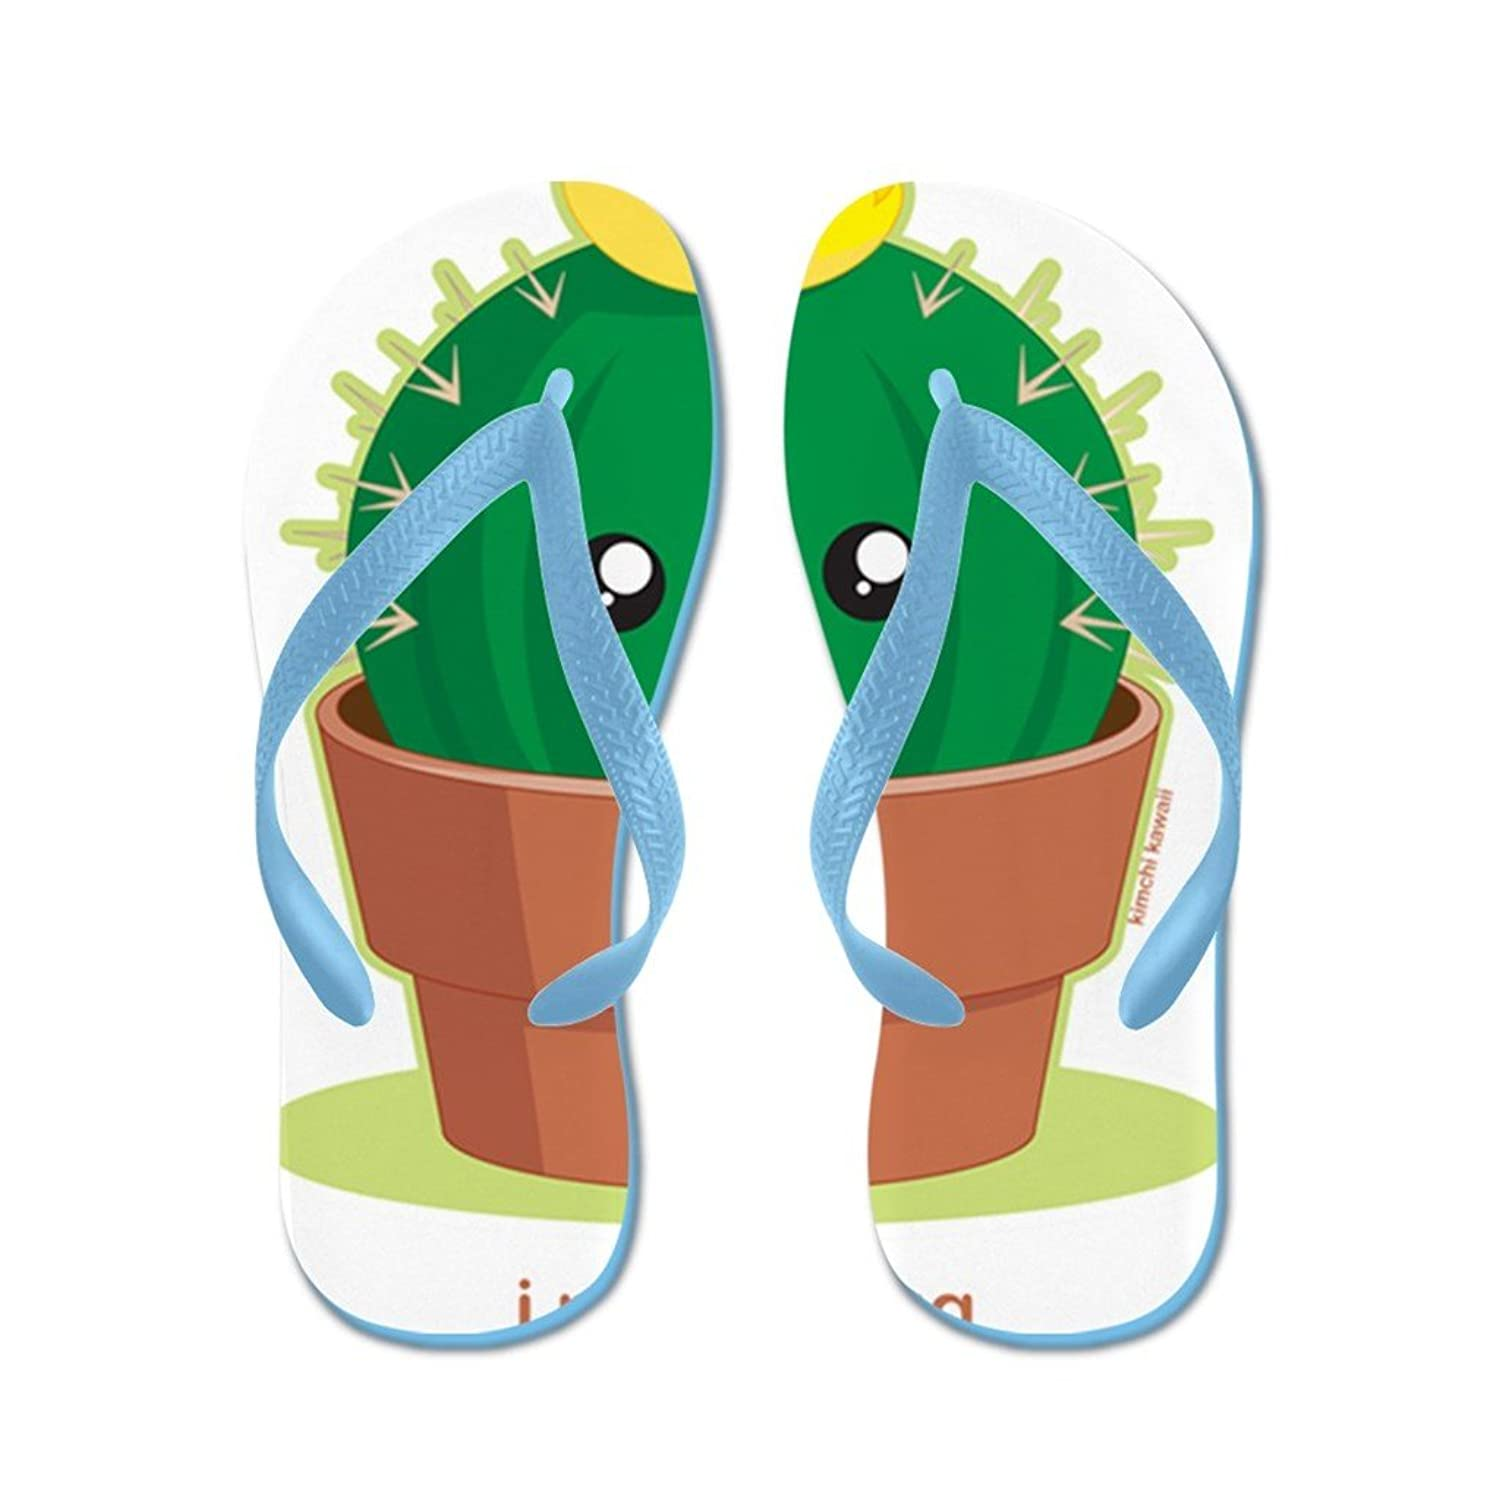 Lplpol Sneaker Flip Flops for Kids and Adult Unisex Beach Sandals Pool Shoes Party Slippers